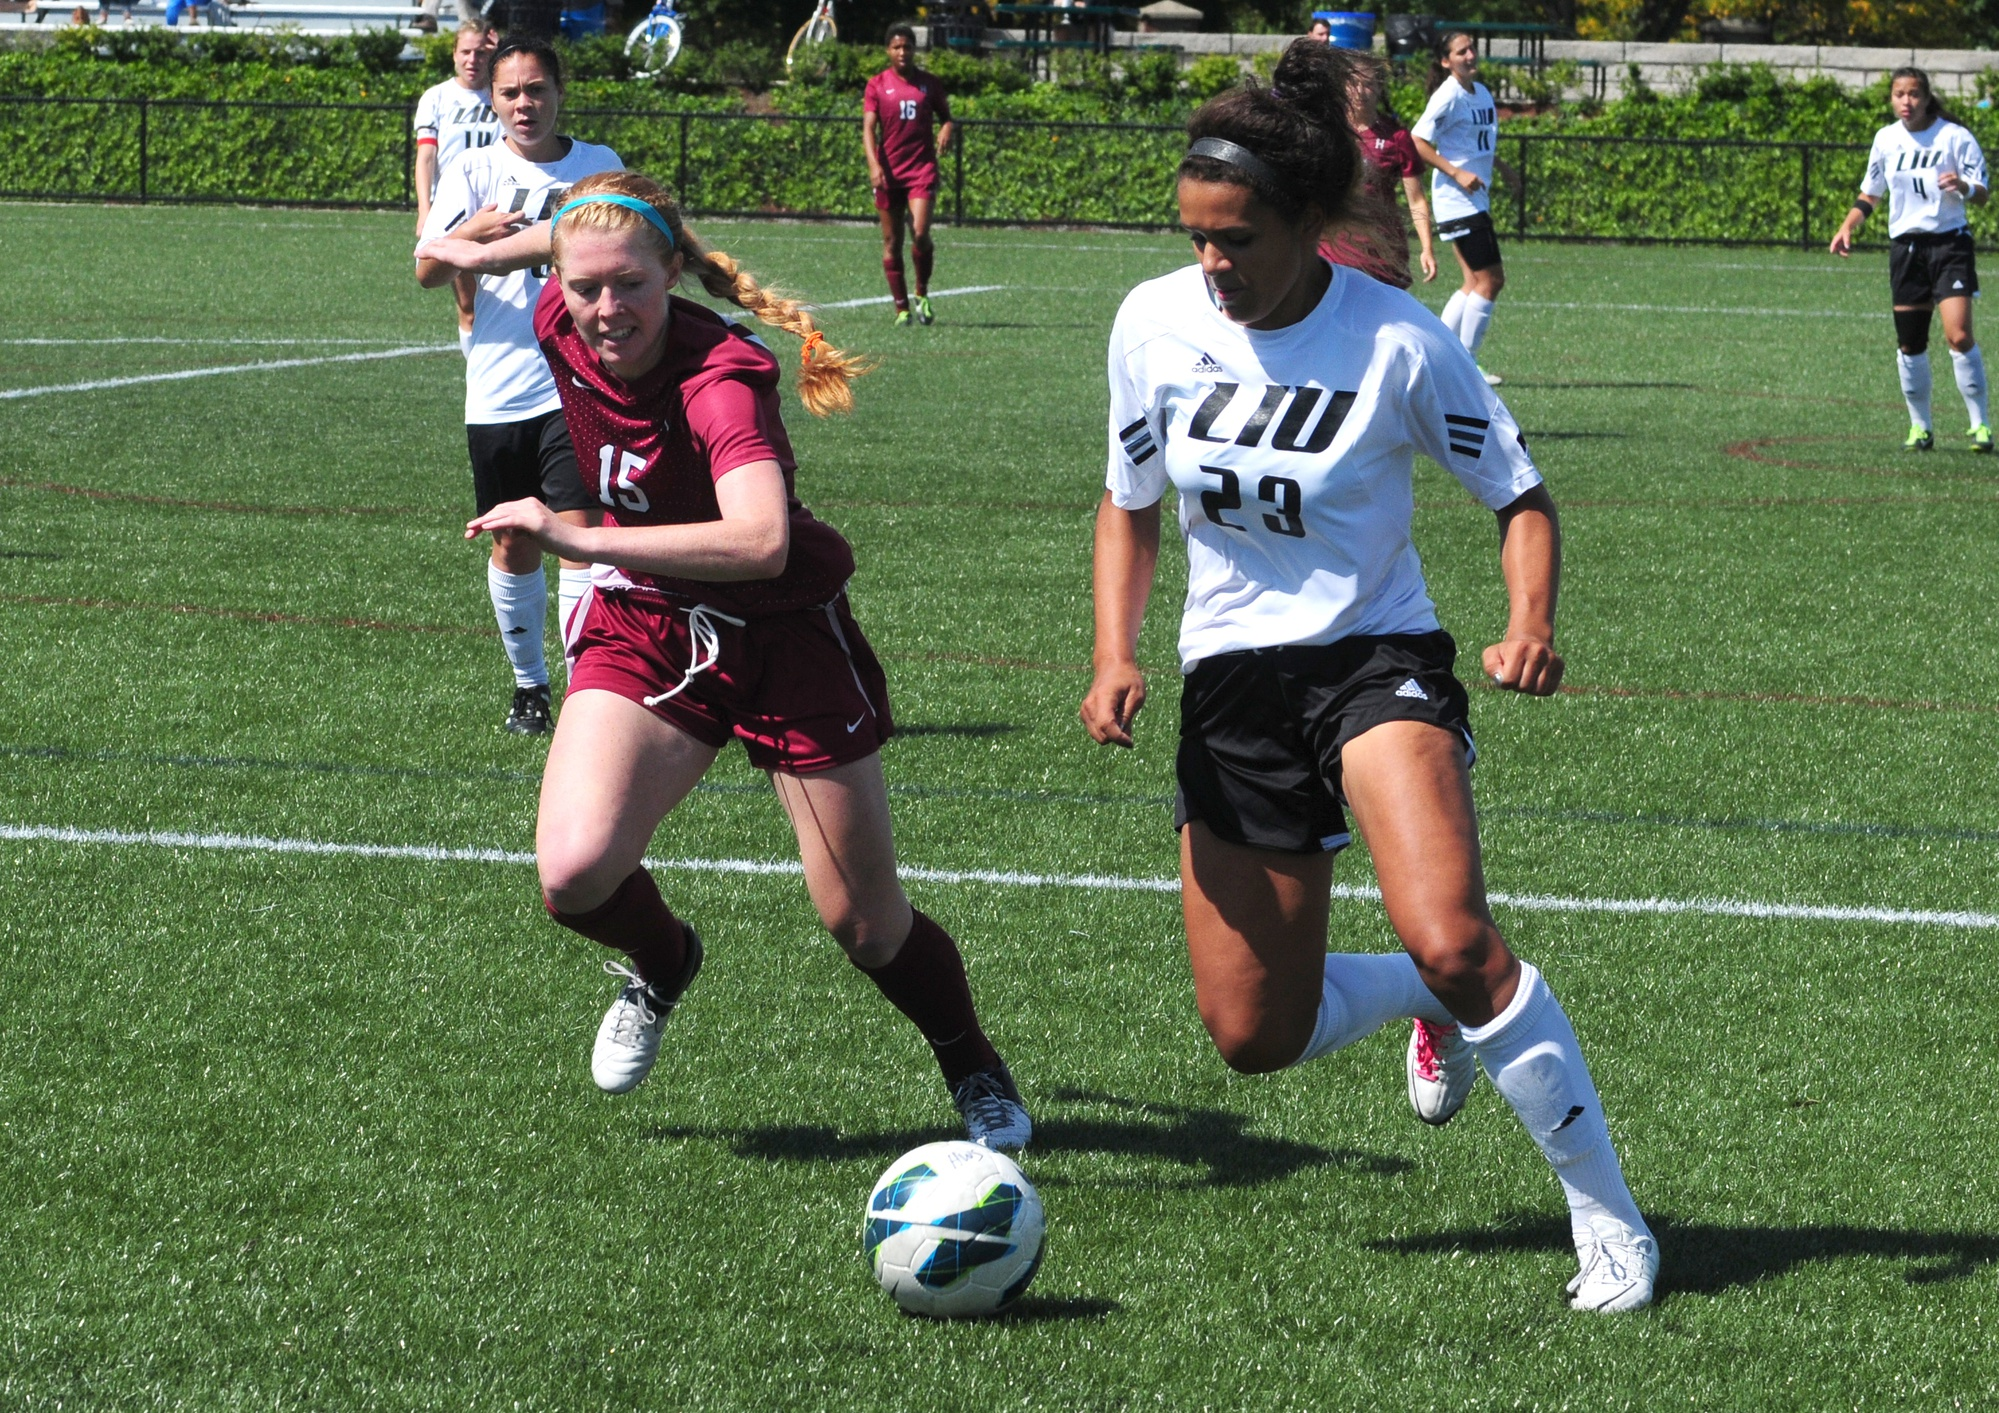 Senior forward Emily Mosbacher, shown here in previous action, notched a shot on goal in a winning effort against Army.